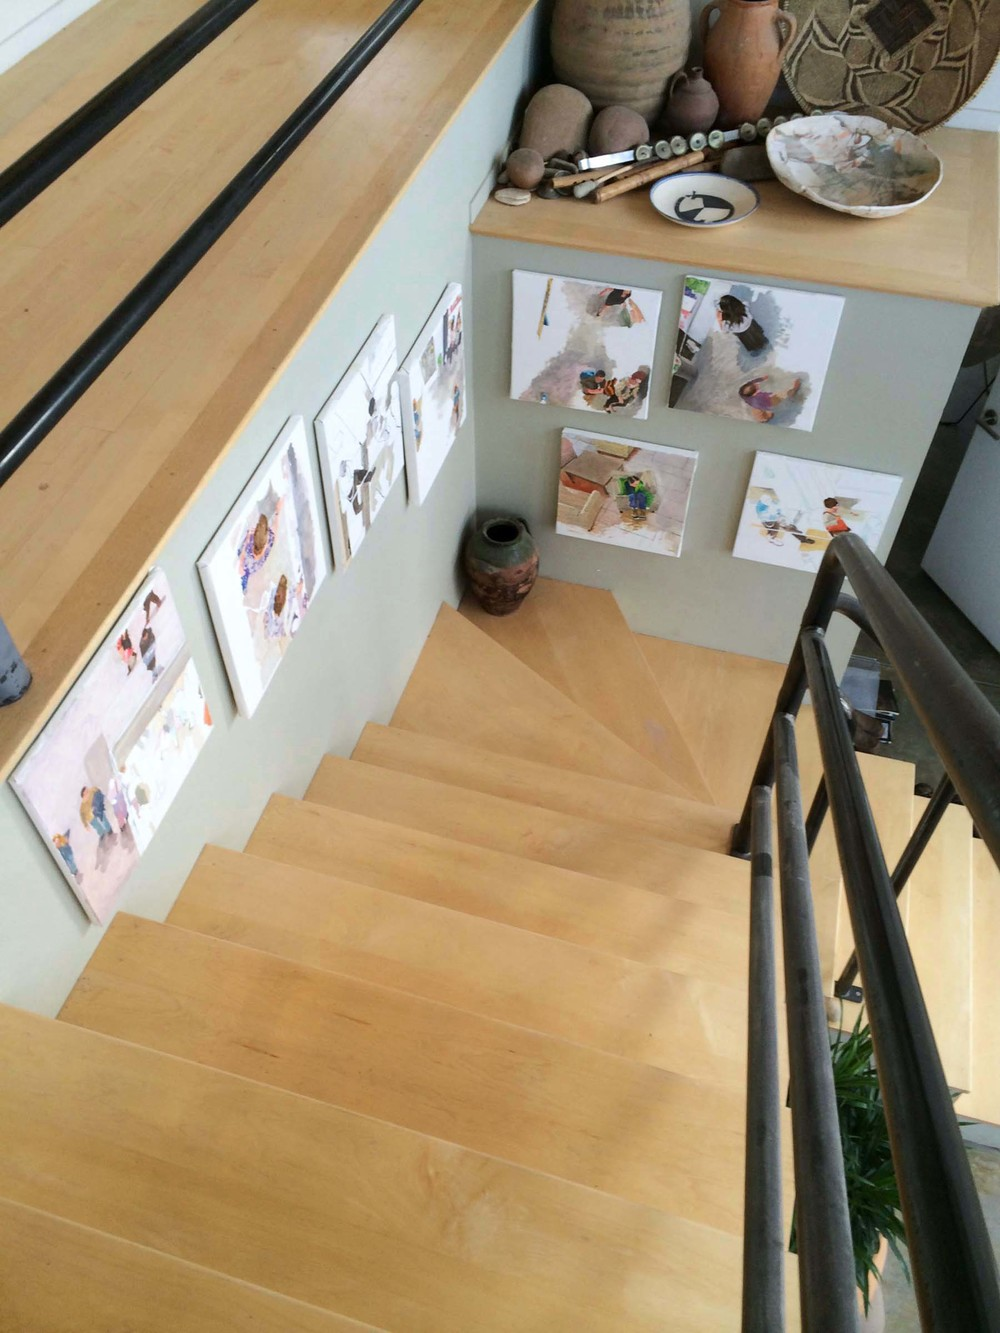 site-11-20-14 paintings on stairs 1.jpg